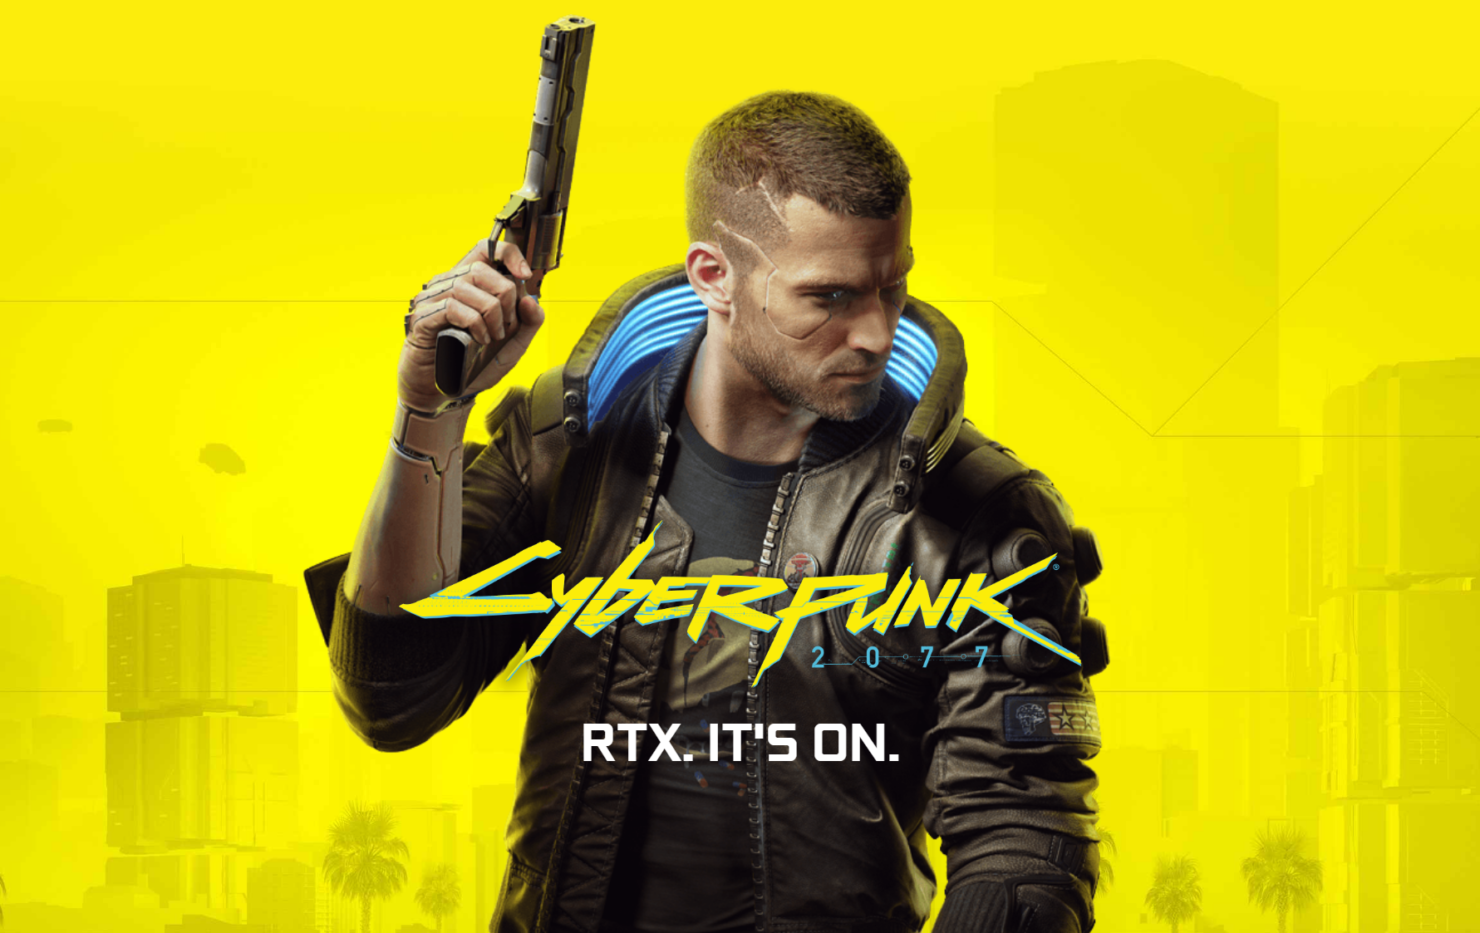 nvidia's-official-cyberpunk-2077-pc-benchmarks-show-geforce-rtx-3080-&-rtx-3090-perfect-for-1440p-60-fps-with-raytracing-&-dlss,-4k-barely-hits-60-fps